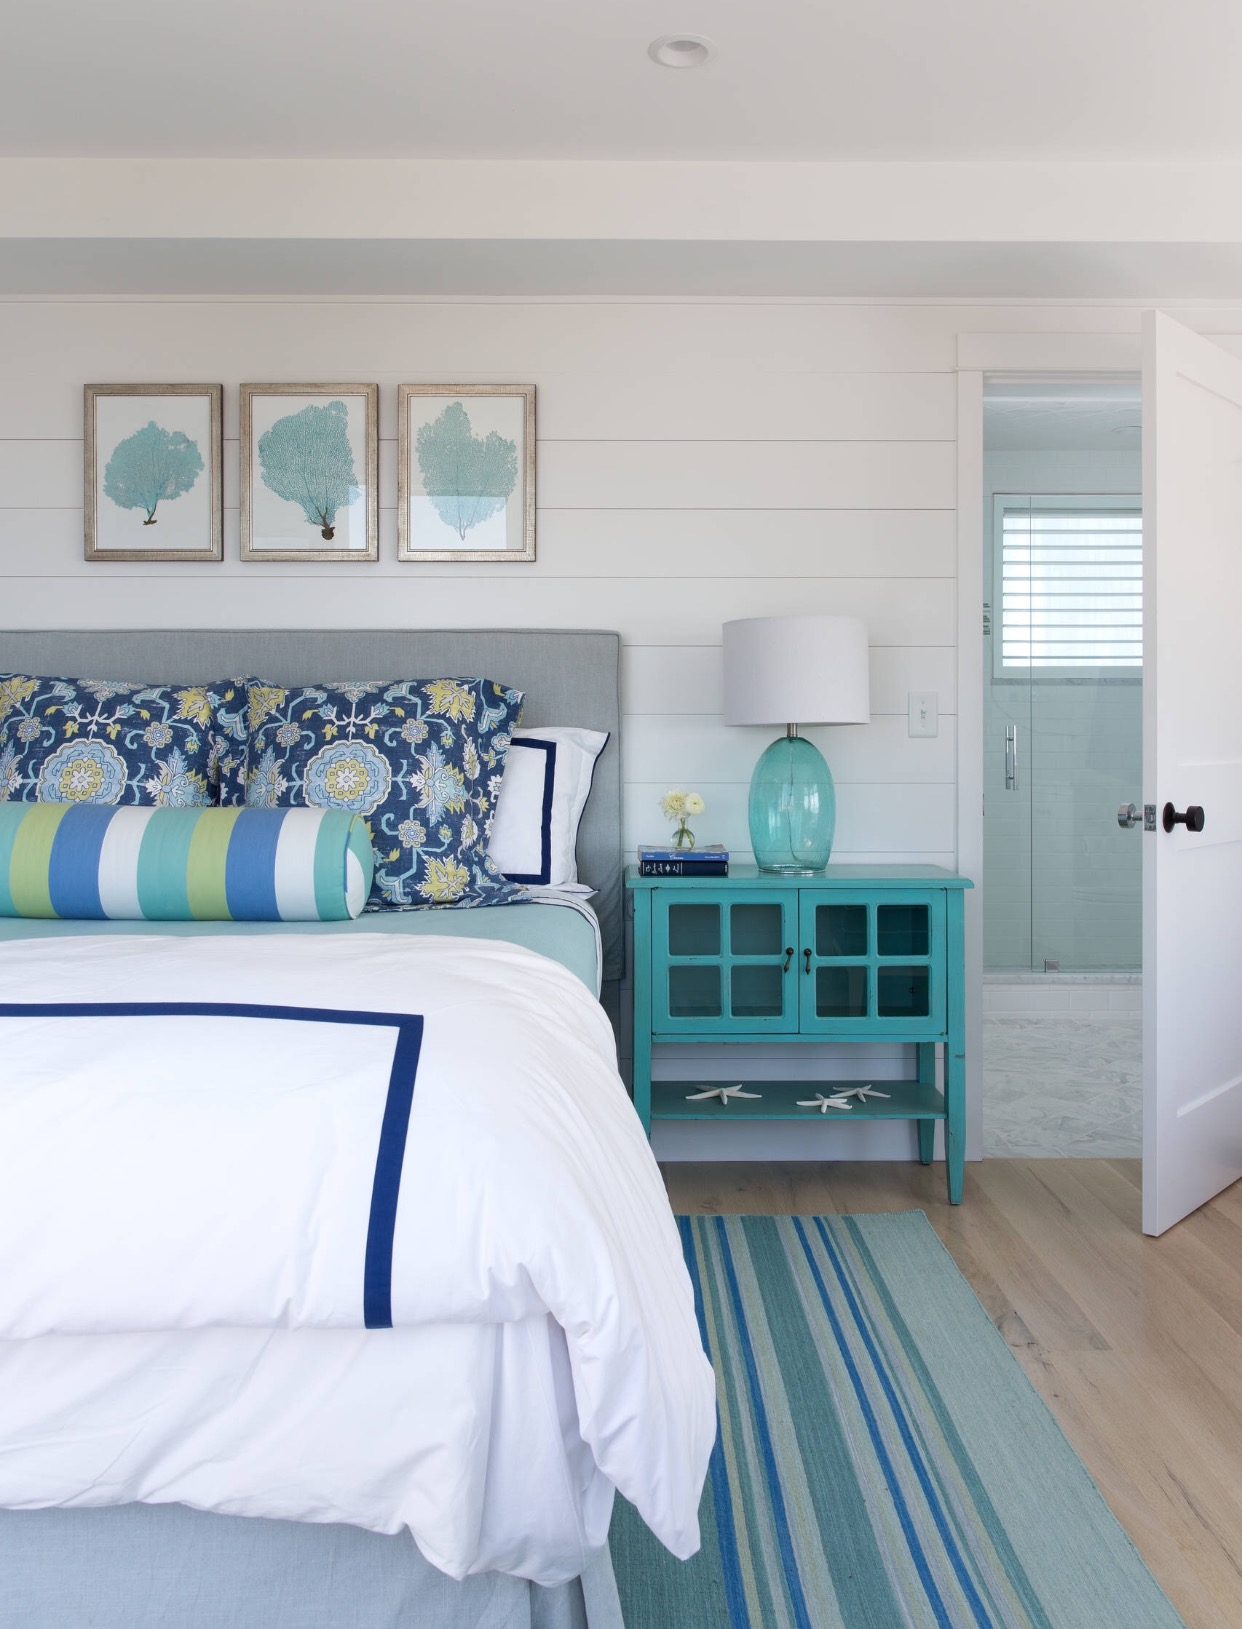 Turquoise and Teal Coastal Bedroom